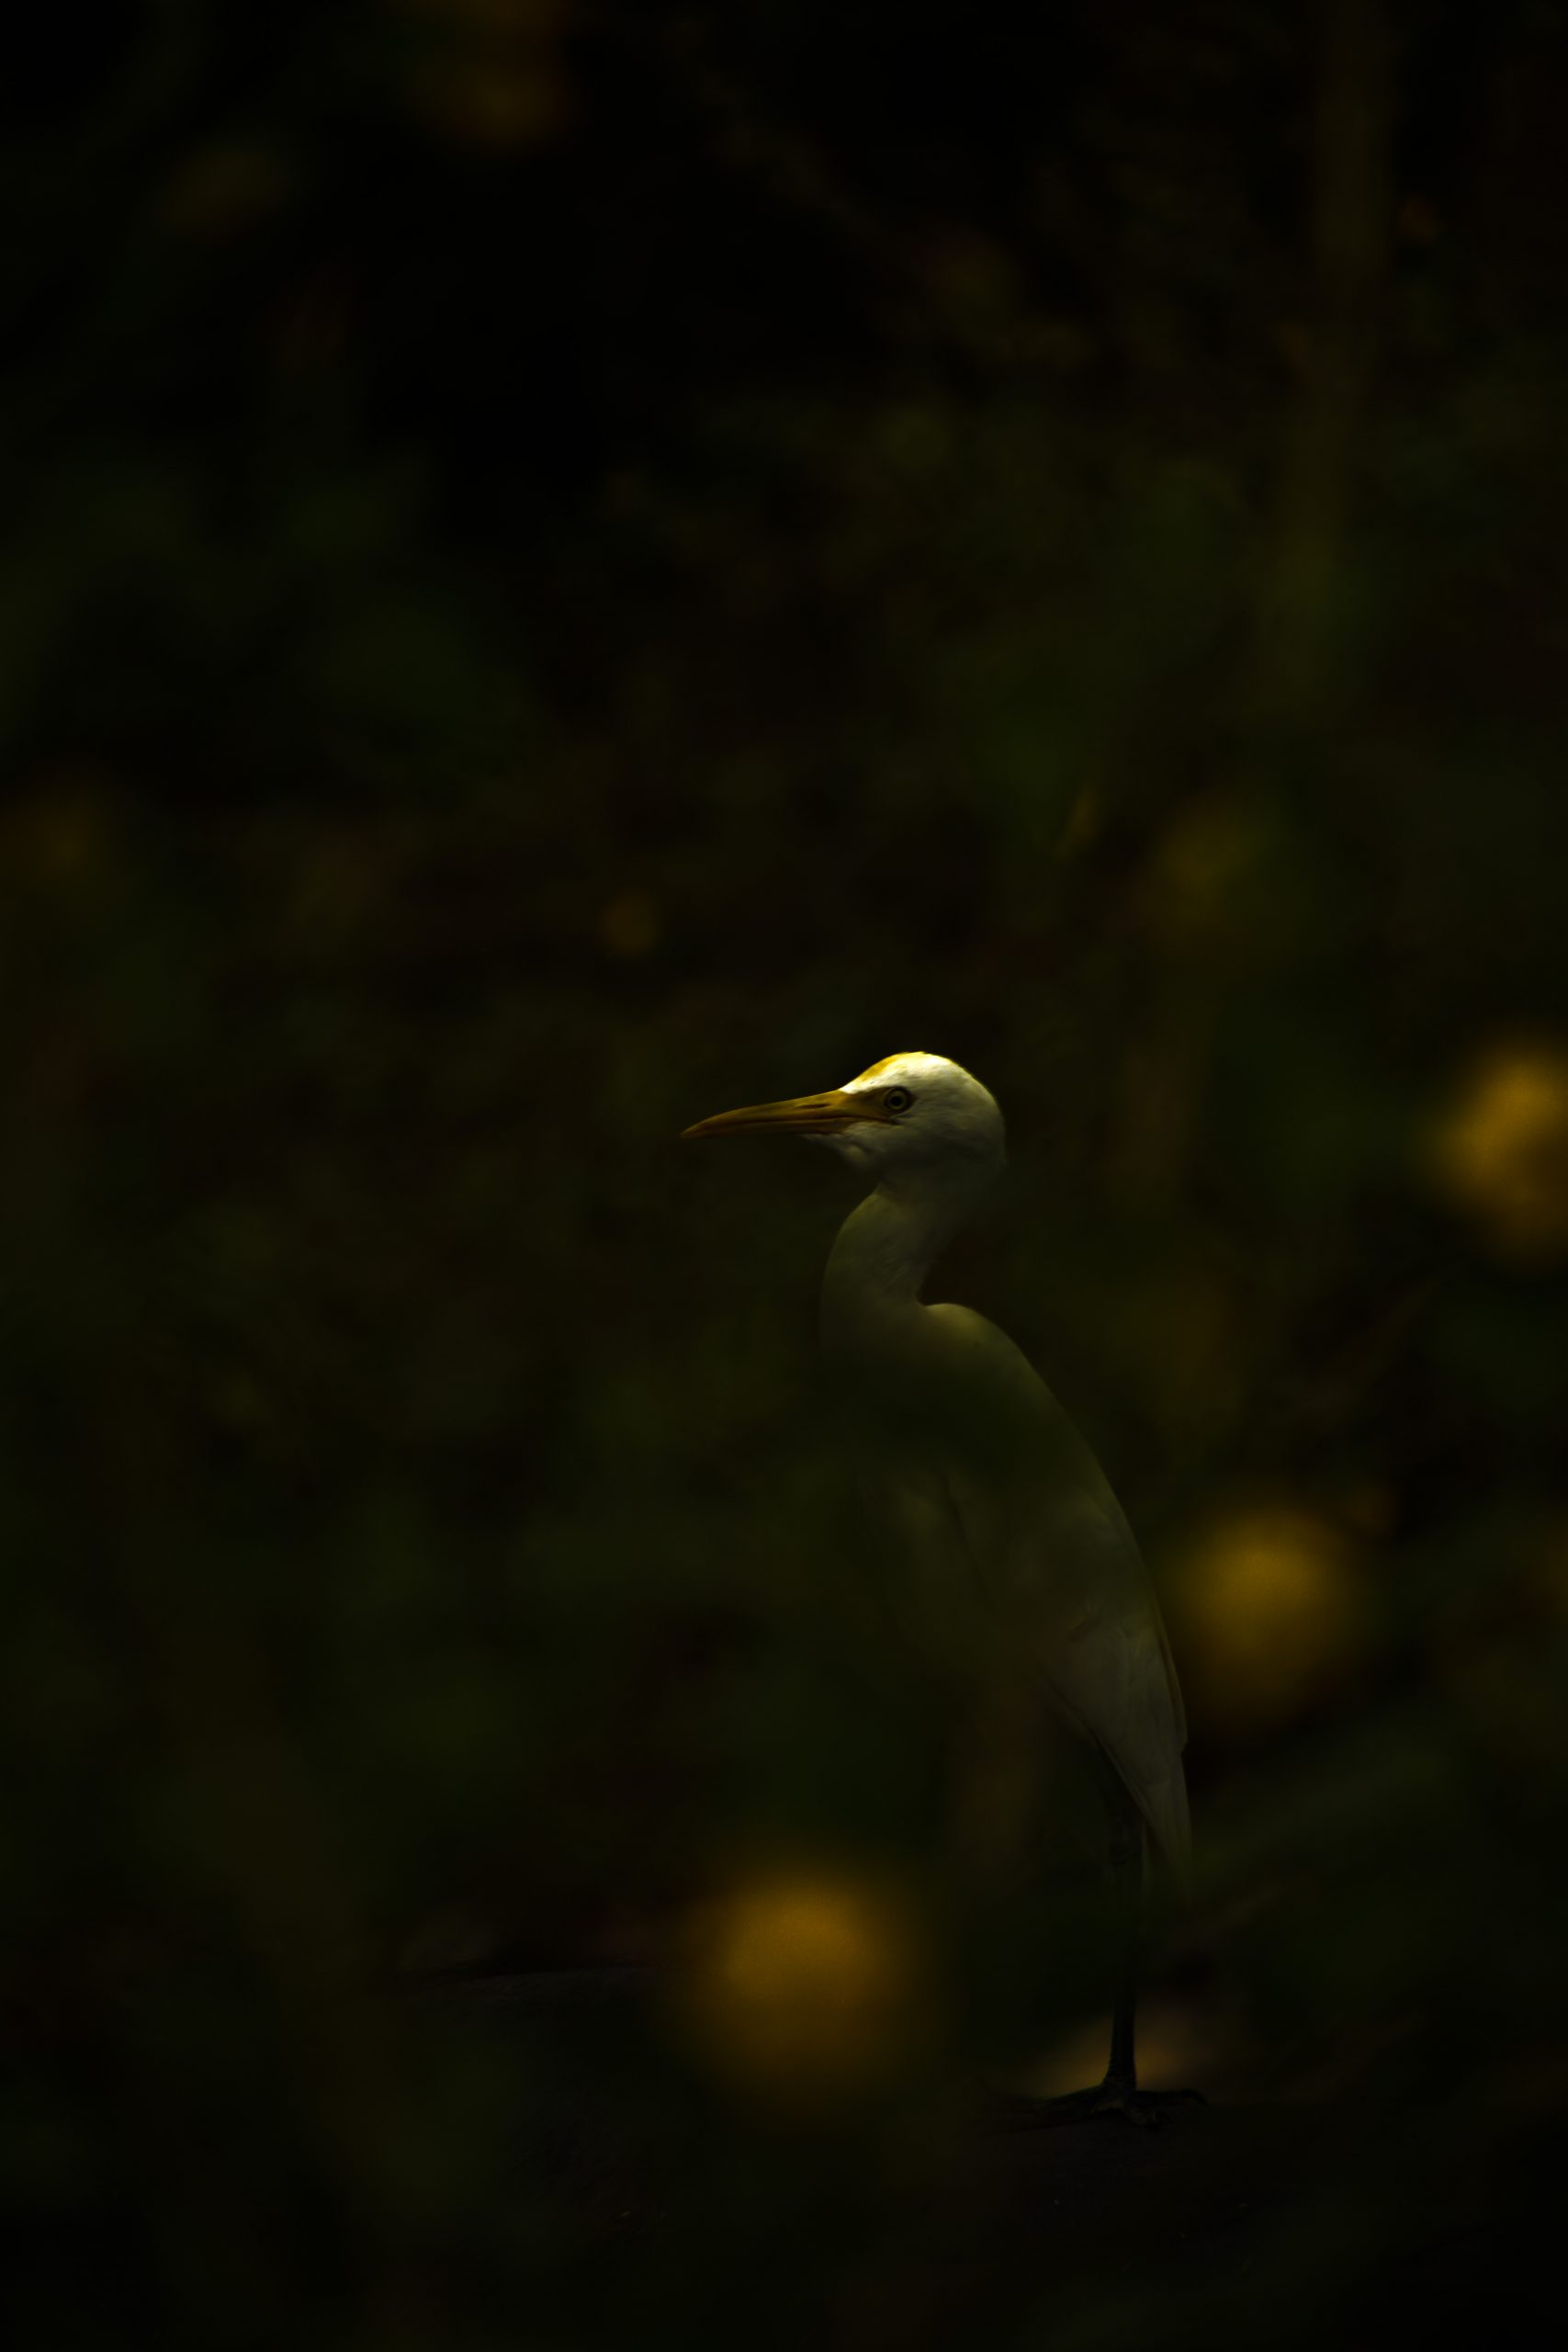 Bird in darkness